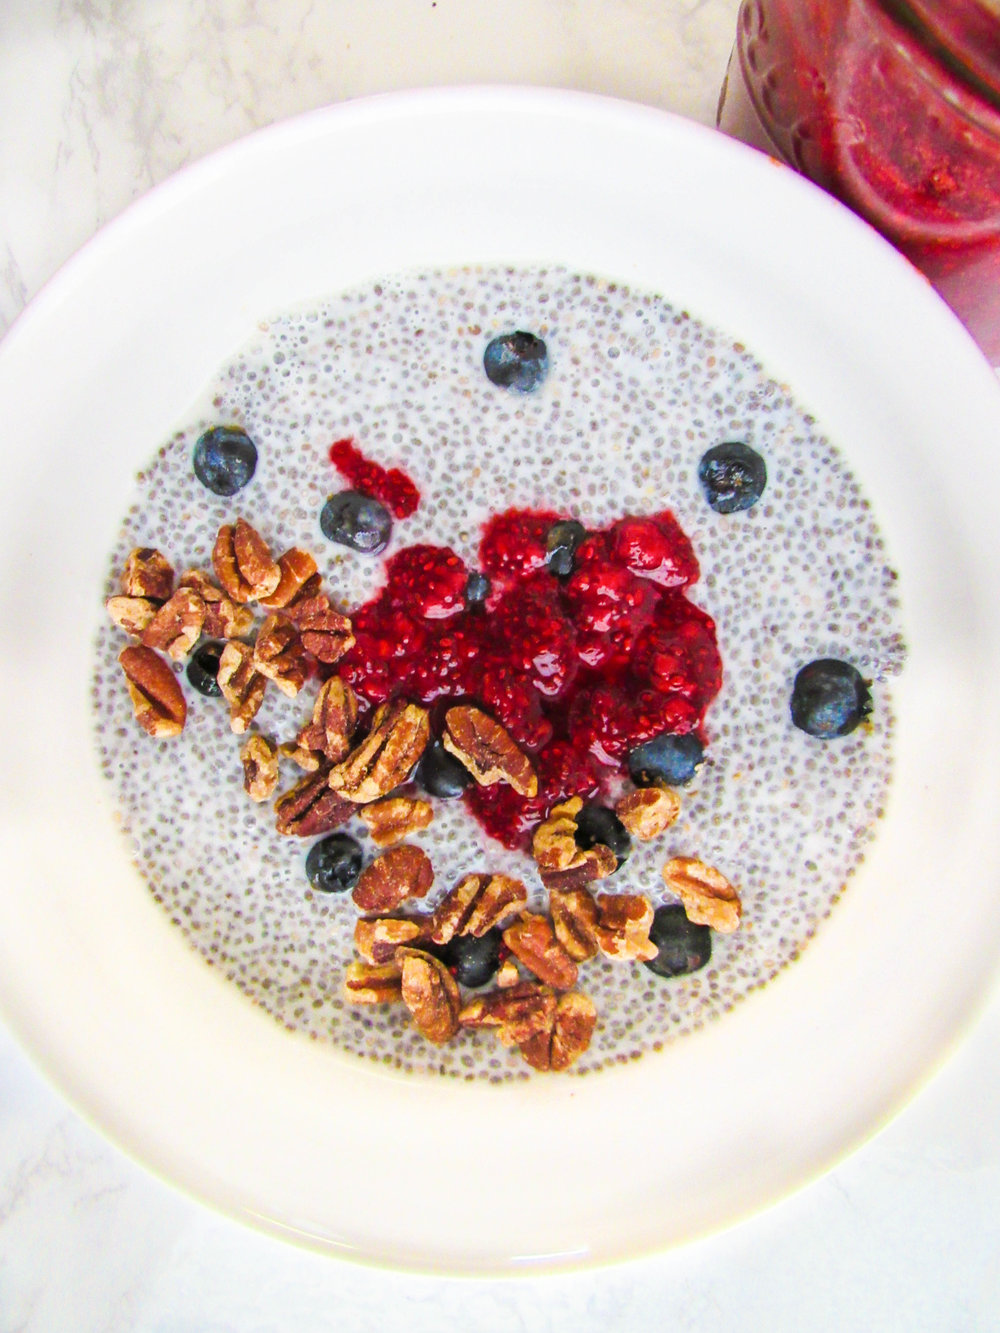 Omega 3's! - Want to get your omega 3's in today? This chia + pecan recipe will get you there!